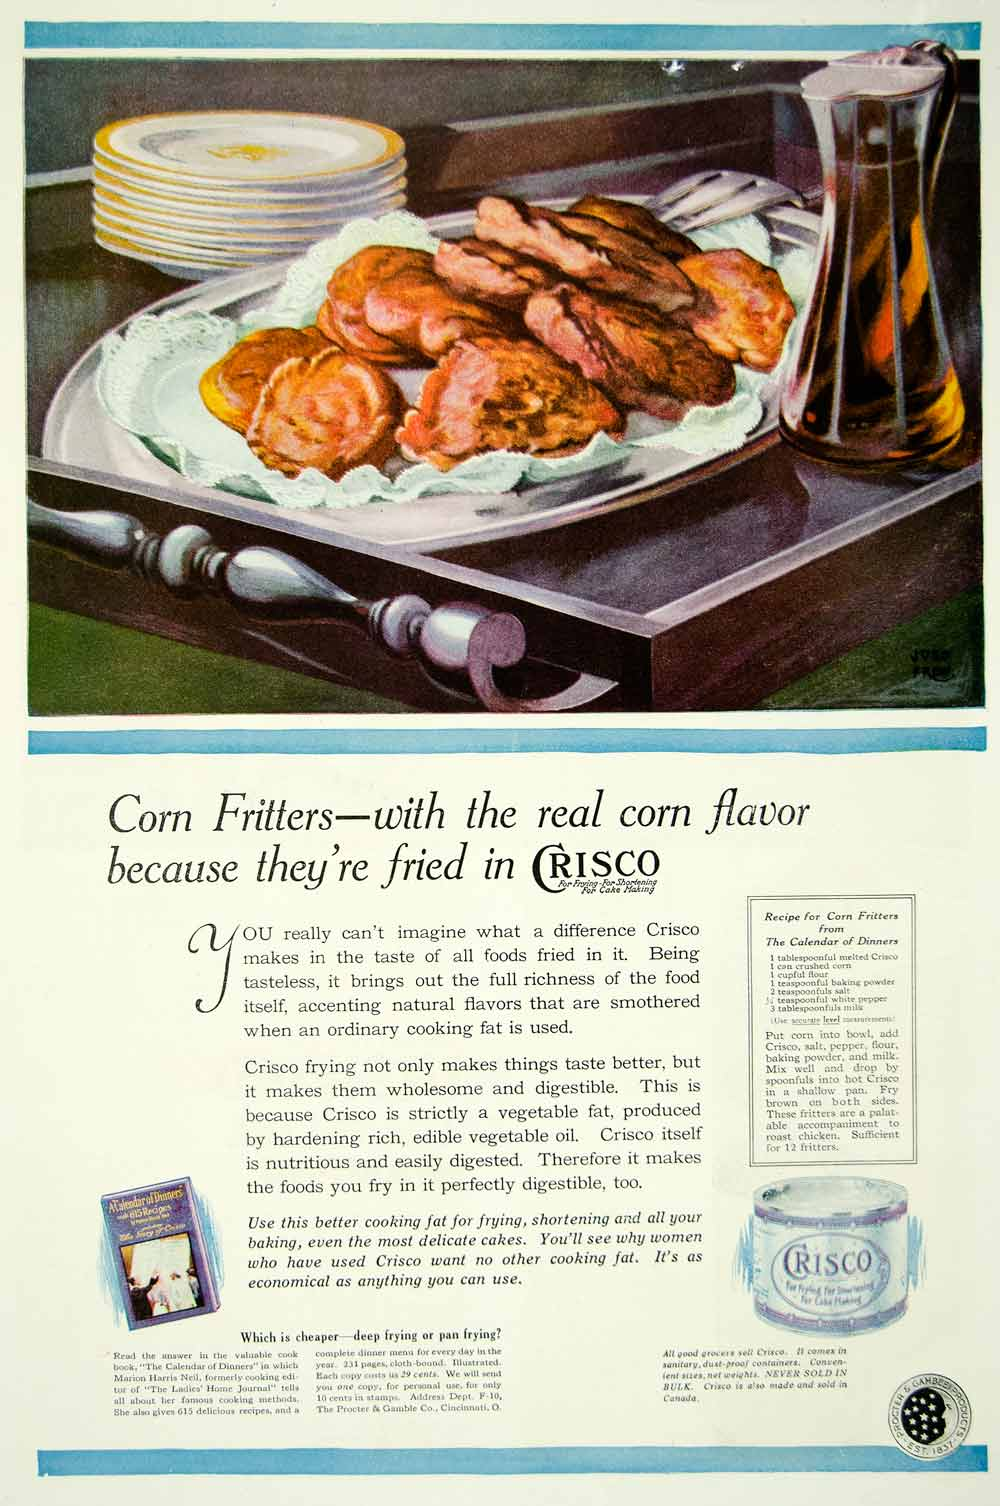 1920 Ad Corn Fritters Crisco Cooking Fat Vegetable Tray Frying Fried Foods YDL9